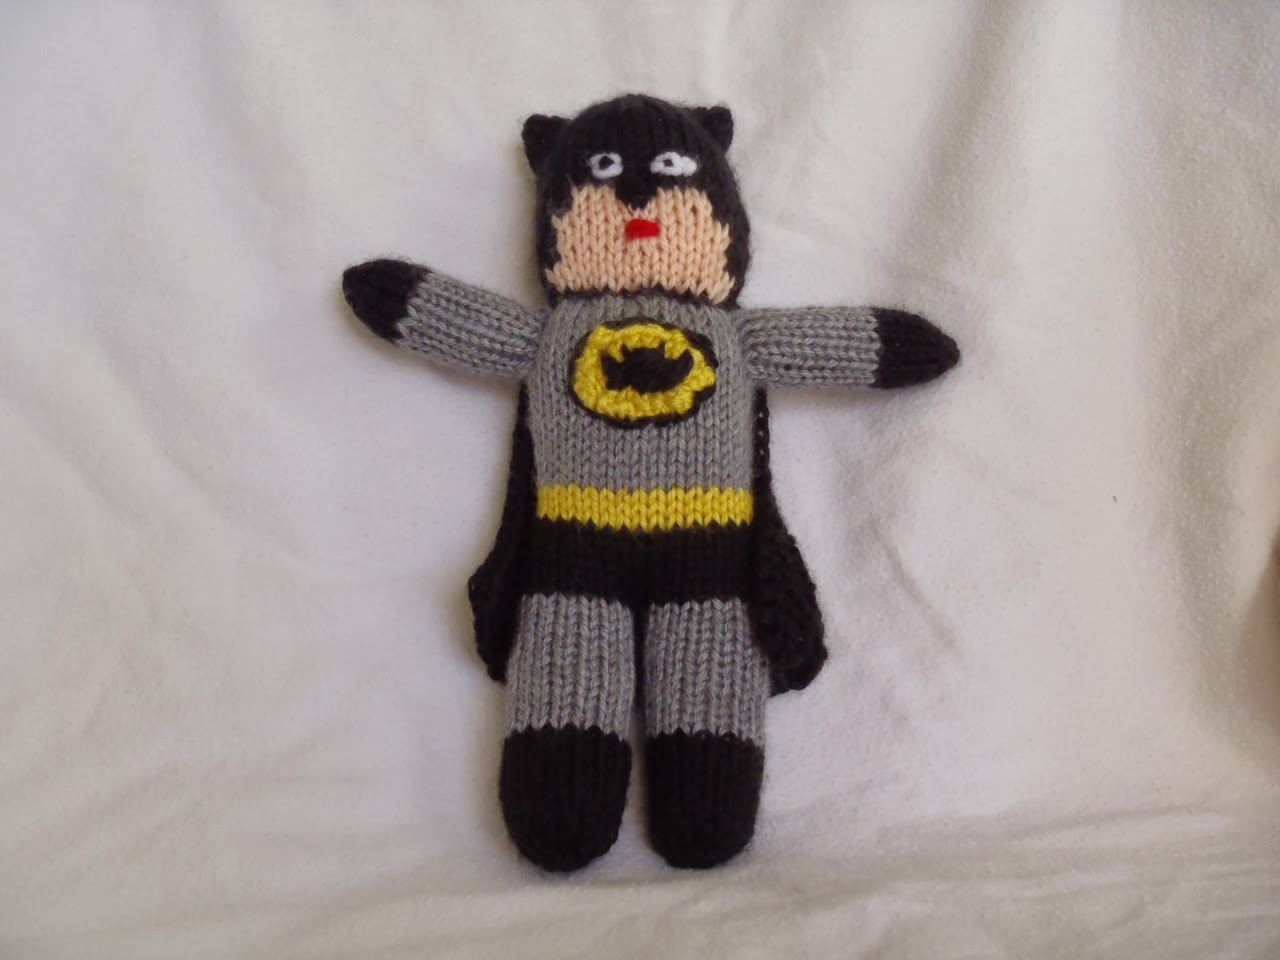 Stanas critters etc knitting pattern for batman toy knitting pattern for batman toy bankloansurffo Image collections